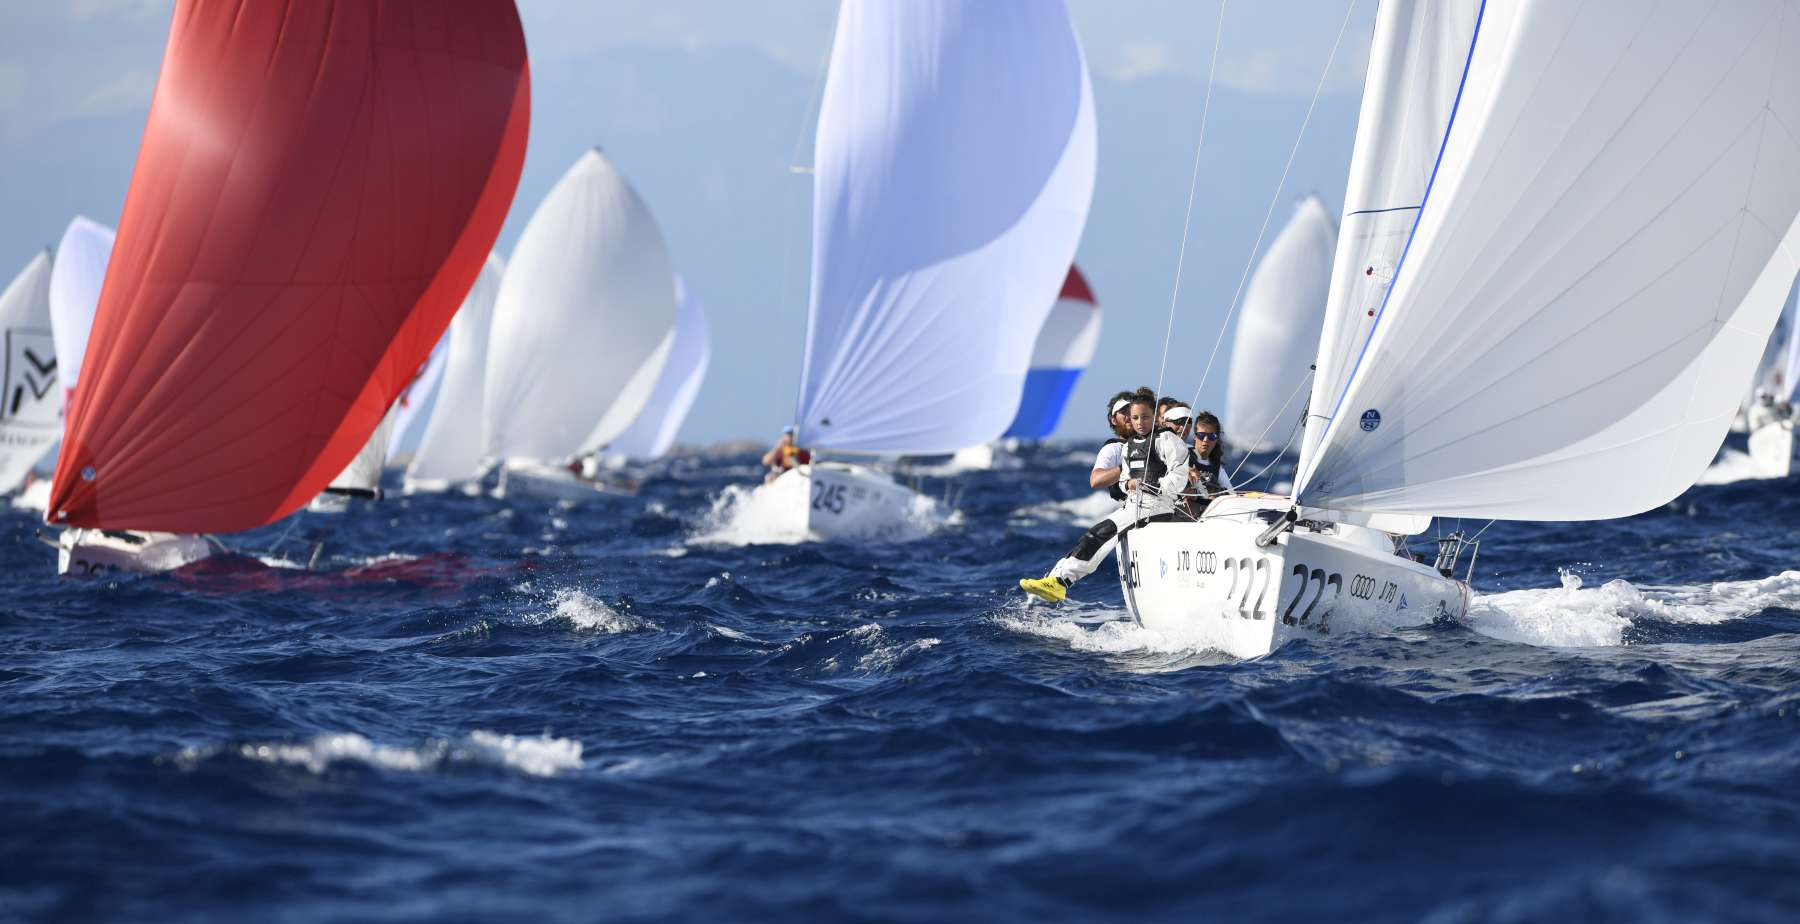 Il team Petite Terrible in rappresentanza dello YCCS alla finale LIV - NEWS - Yacht Club Costa Smeralda